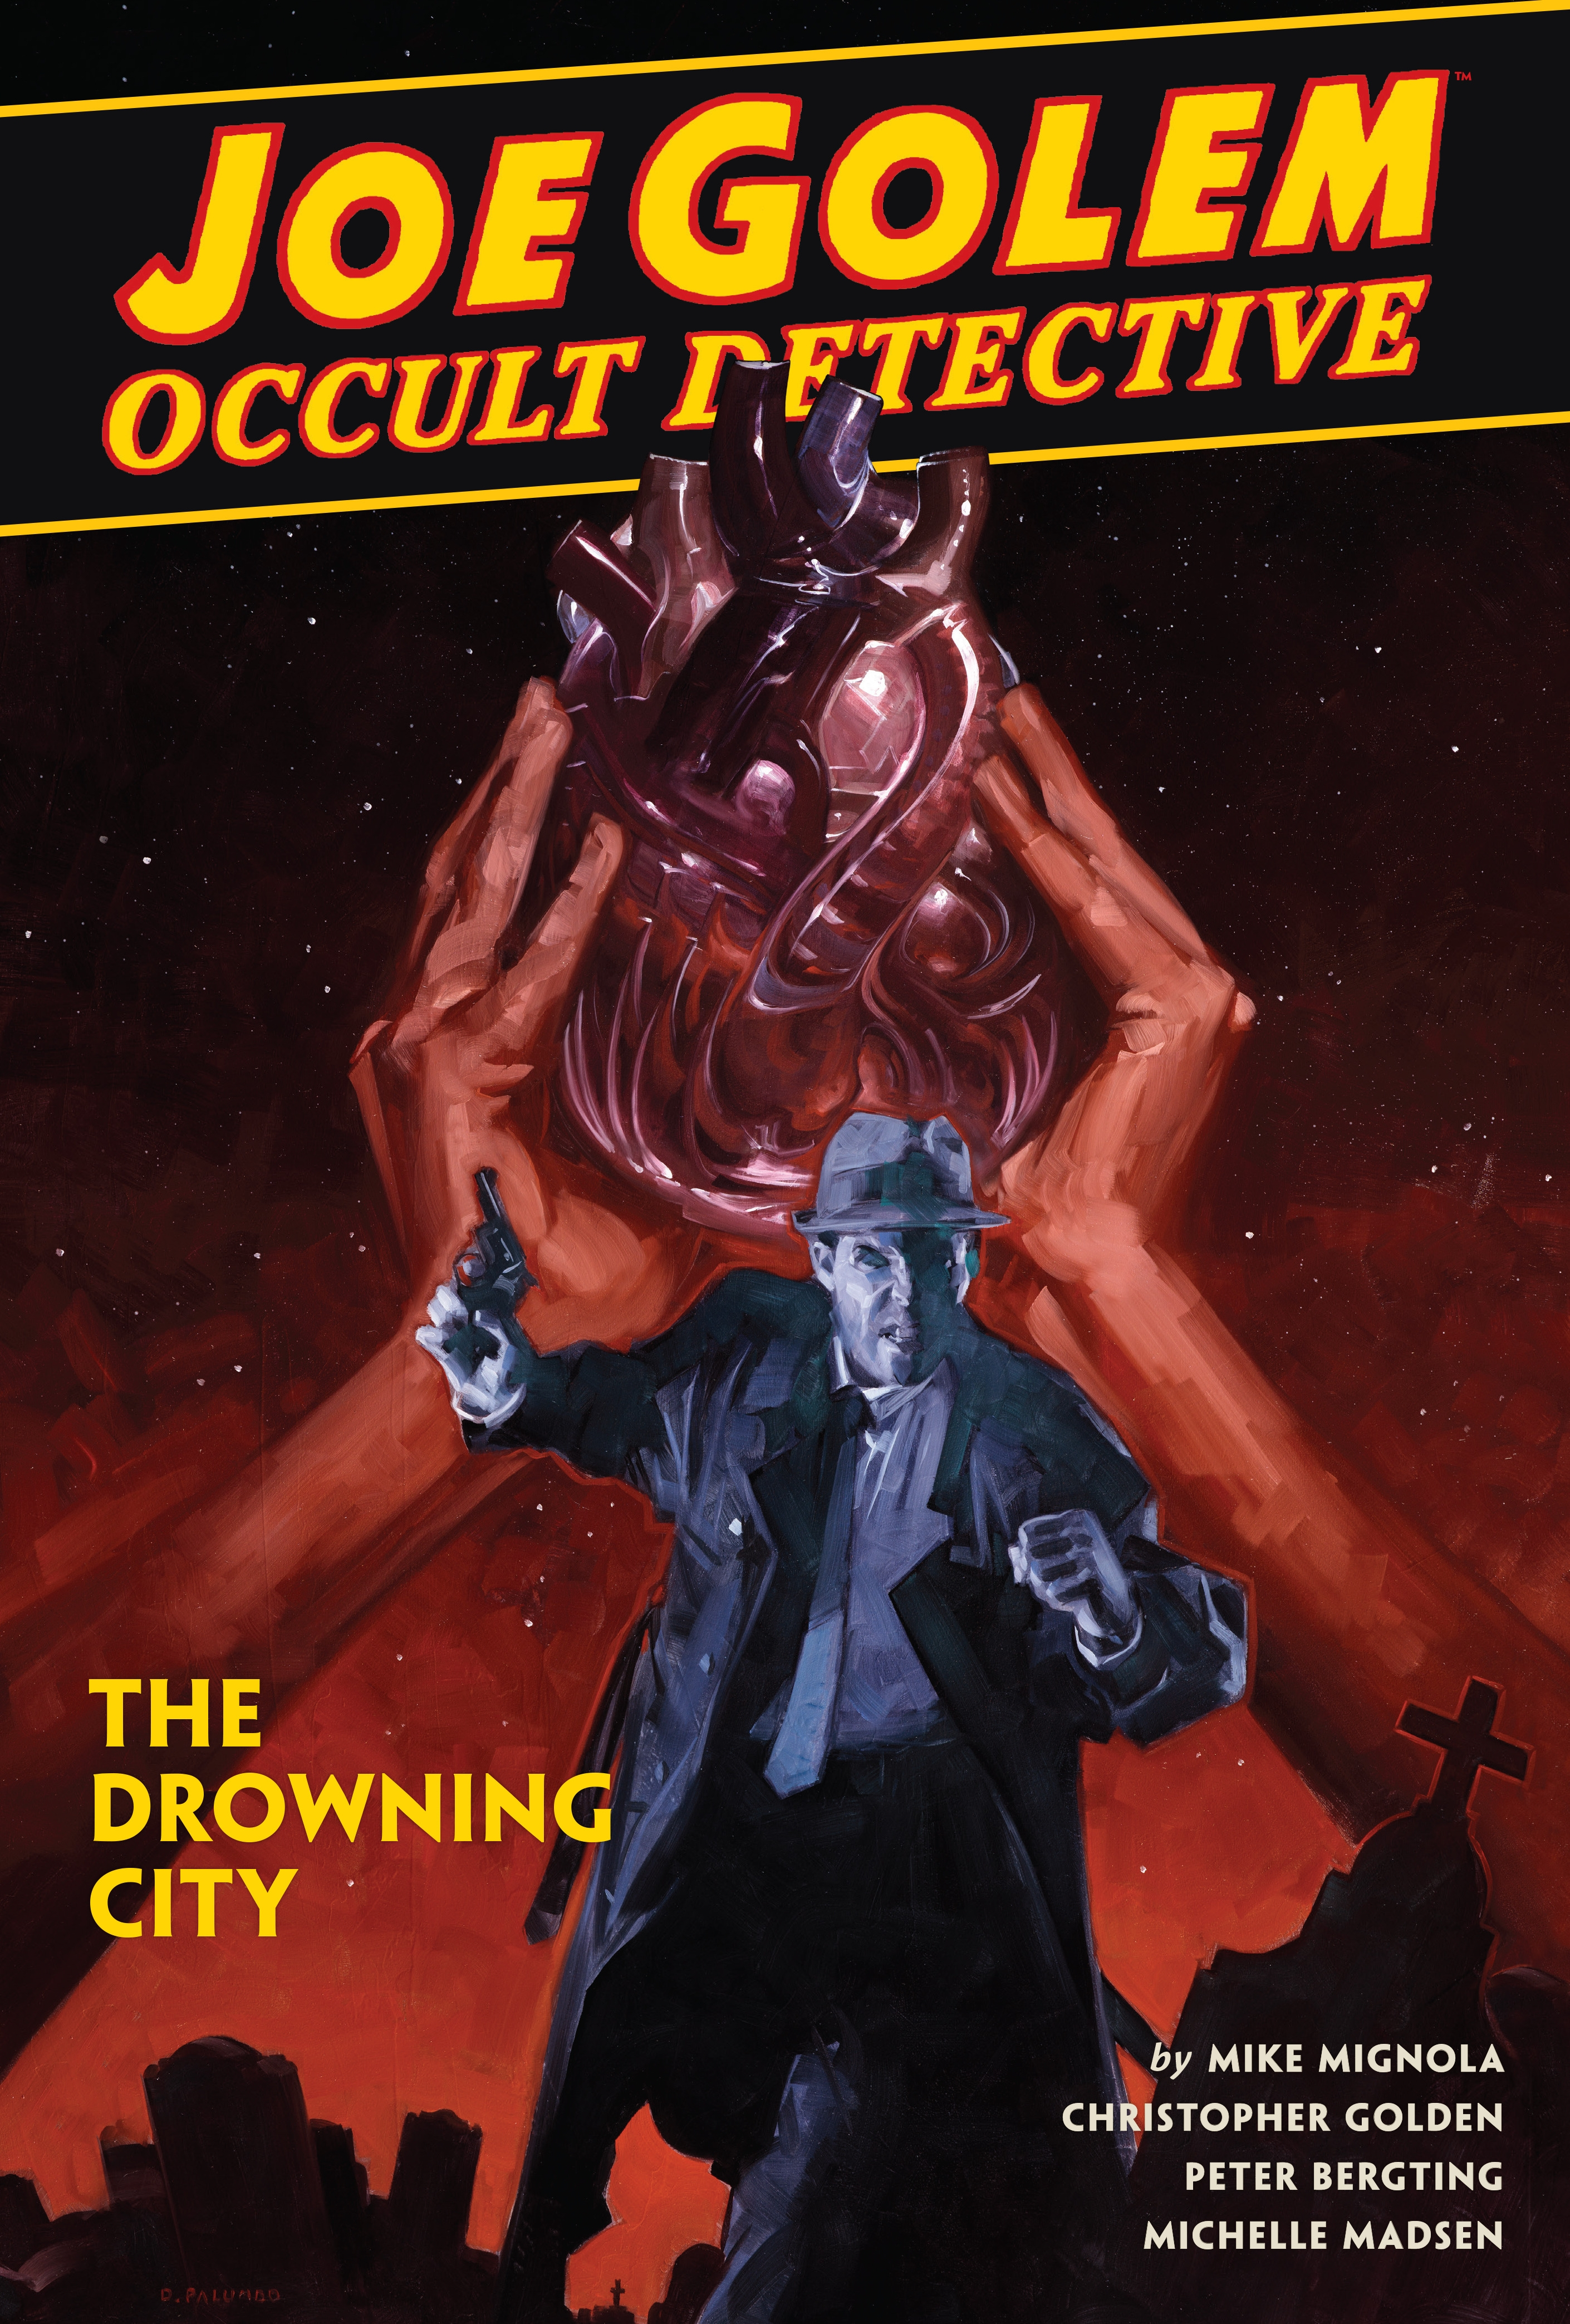 Joe Golem Occult Detective Volume 3--The Drowning City by Mike